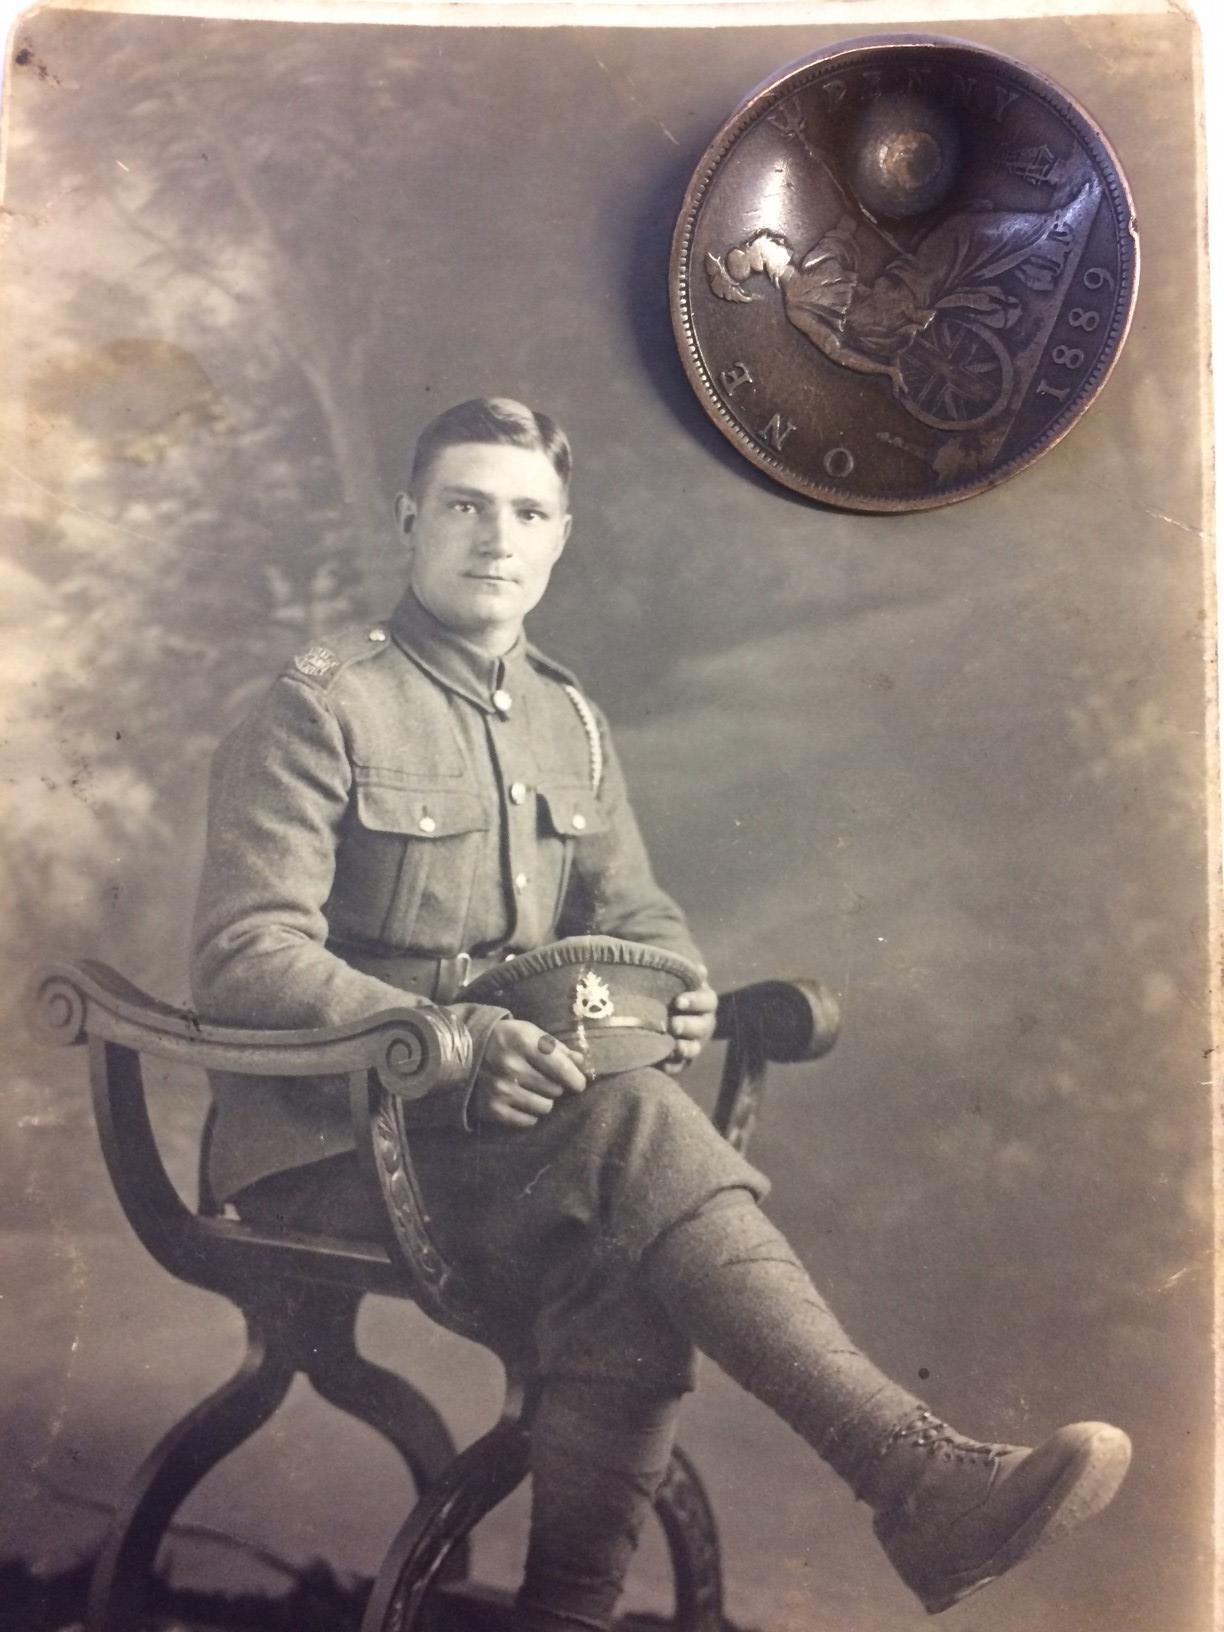 WW1 British War Medal and Victory Medal to 40475 Pte JW Trickett, Northamptonshire Regt. No ribbons. - Image 7 of 7